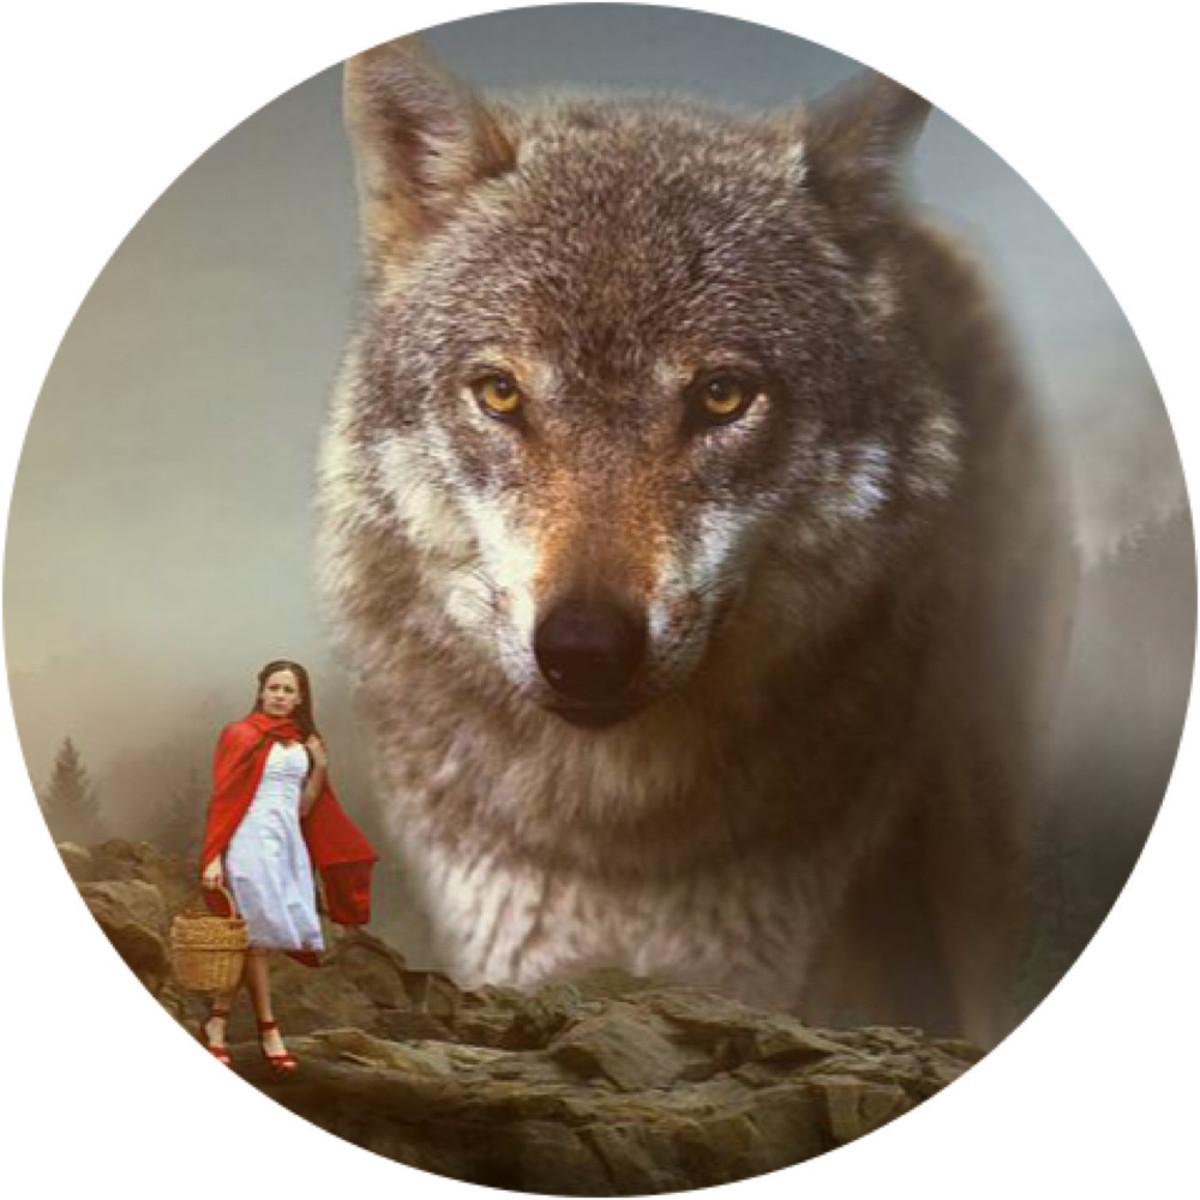 Narcissist and Little Red Riding Hood